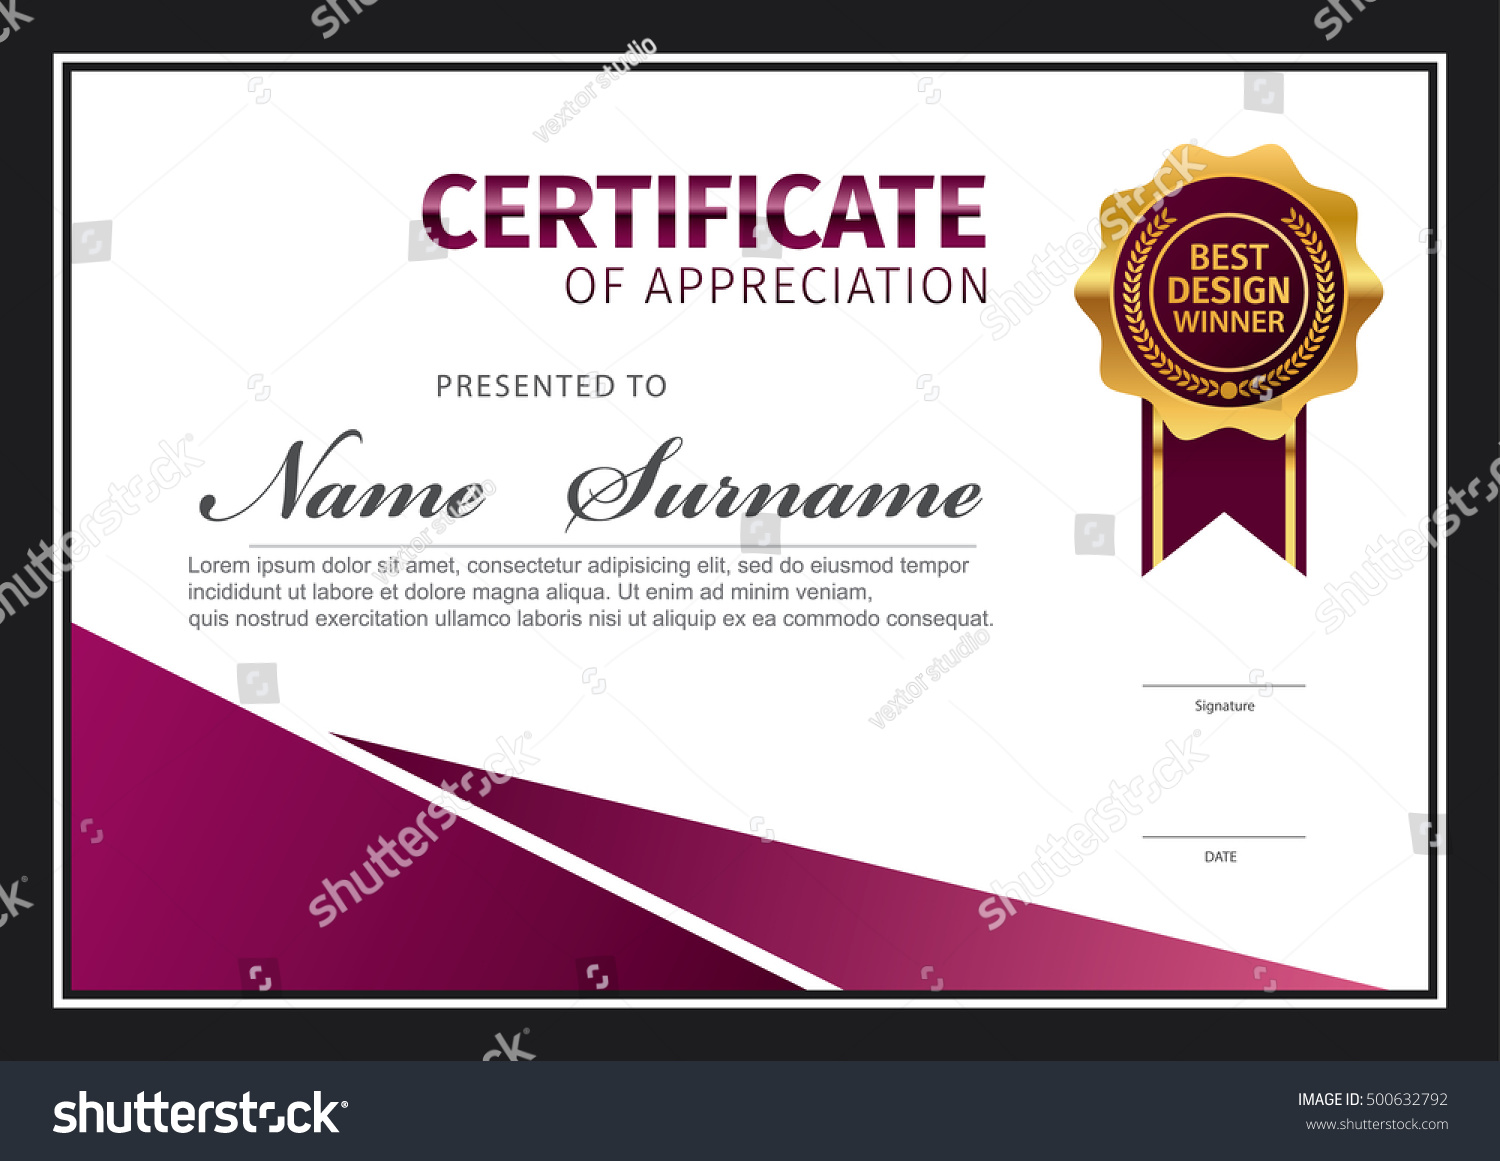 Reiki certificate template free image collections templates reiki certificate template free images templates example free free chef certificate template images certificate design and xflitez Images